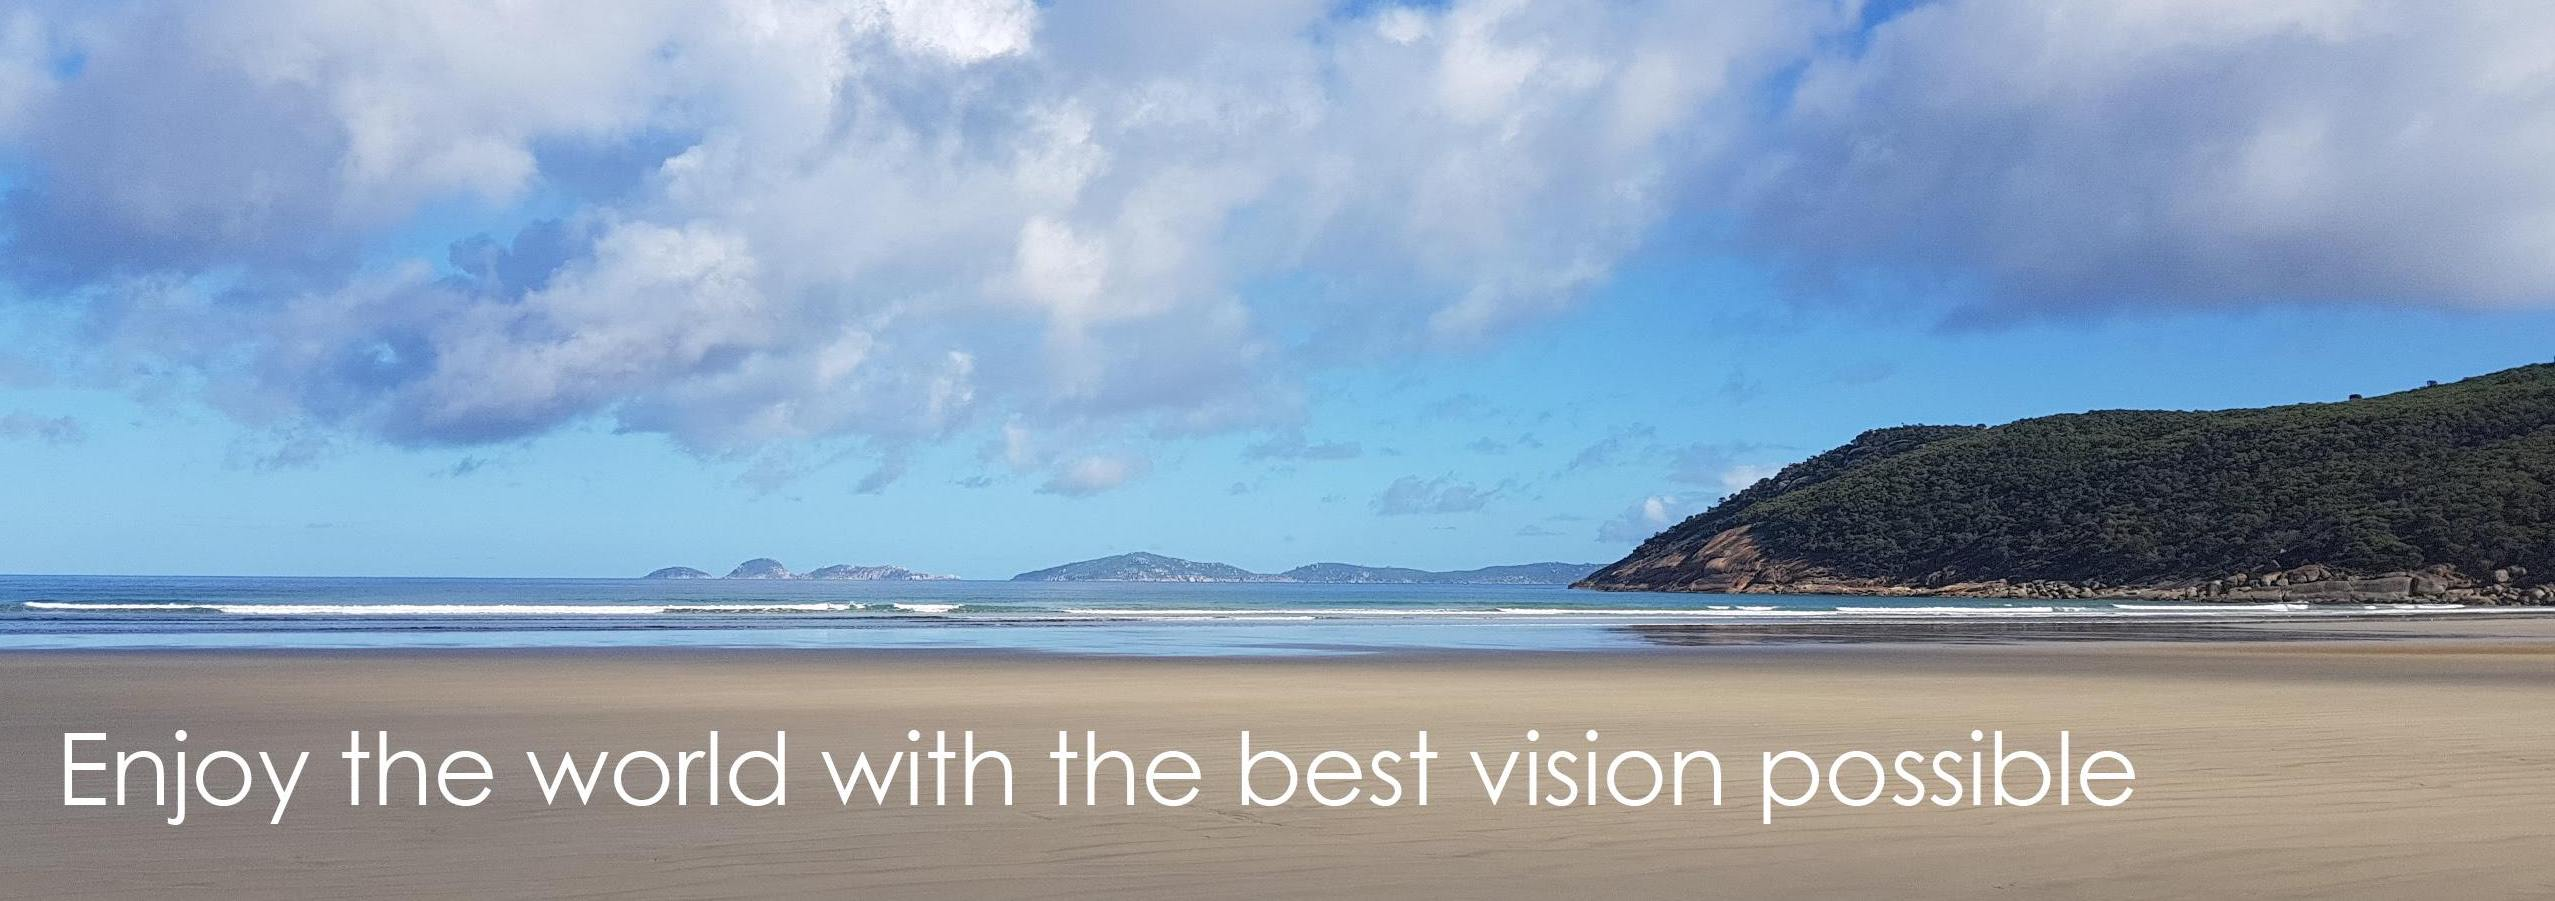 Enjoy the world with the best vision possible